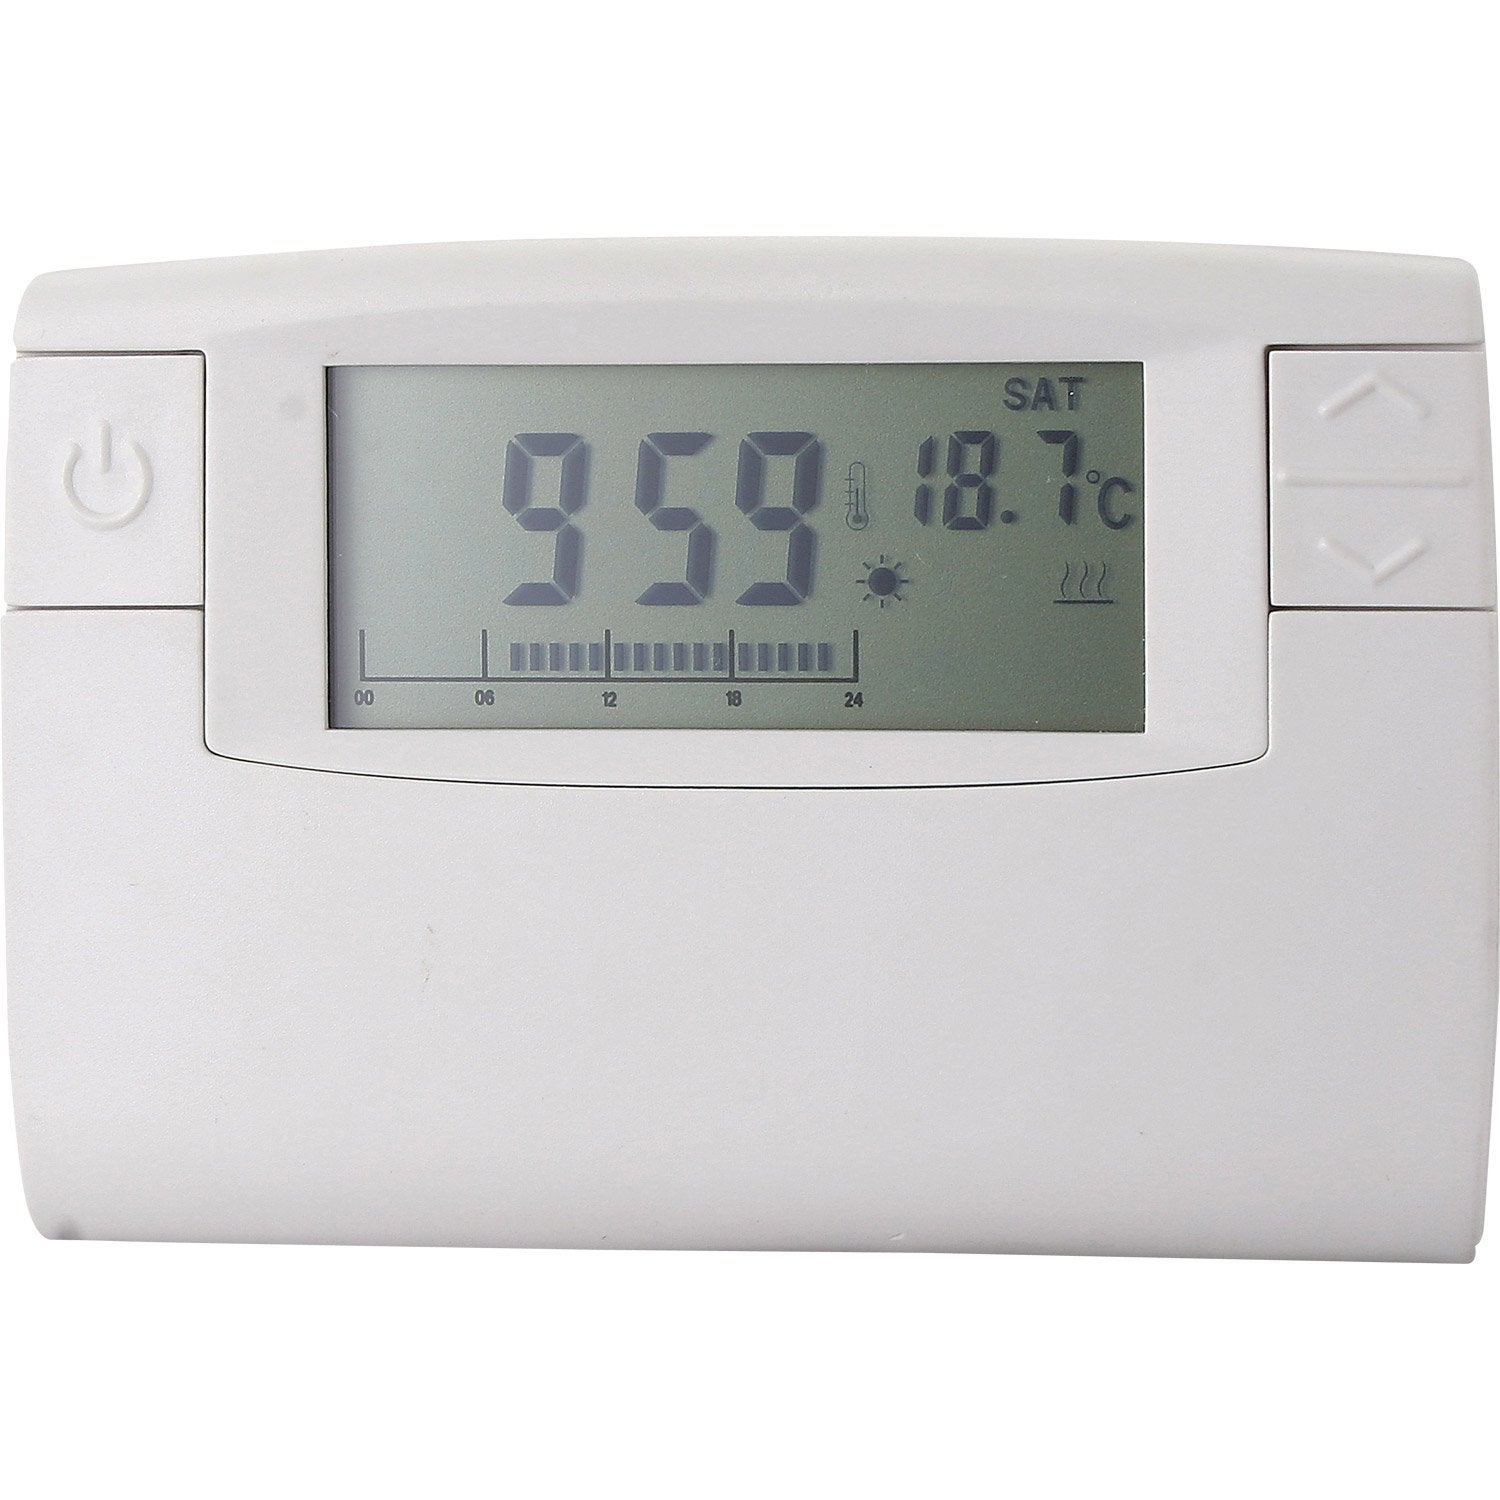 Celcia download images photos and pictures - Thermostat leroy merlin ...